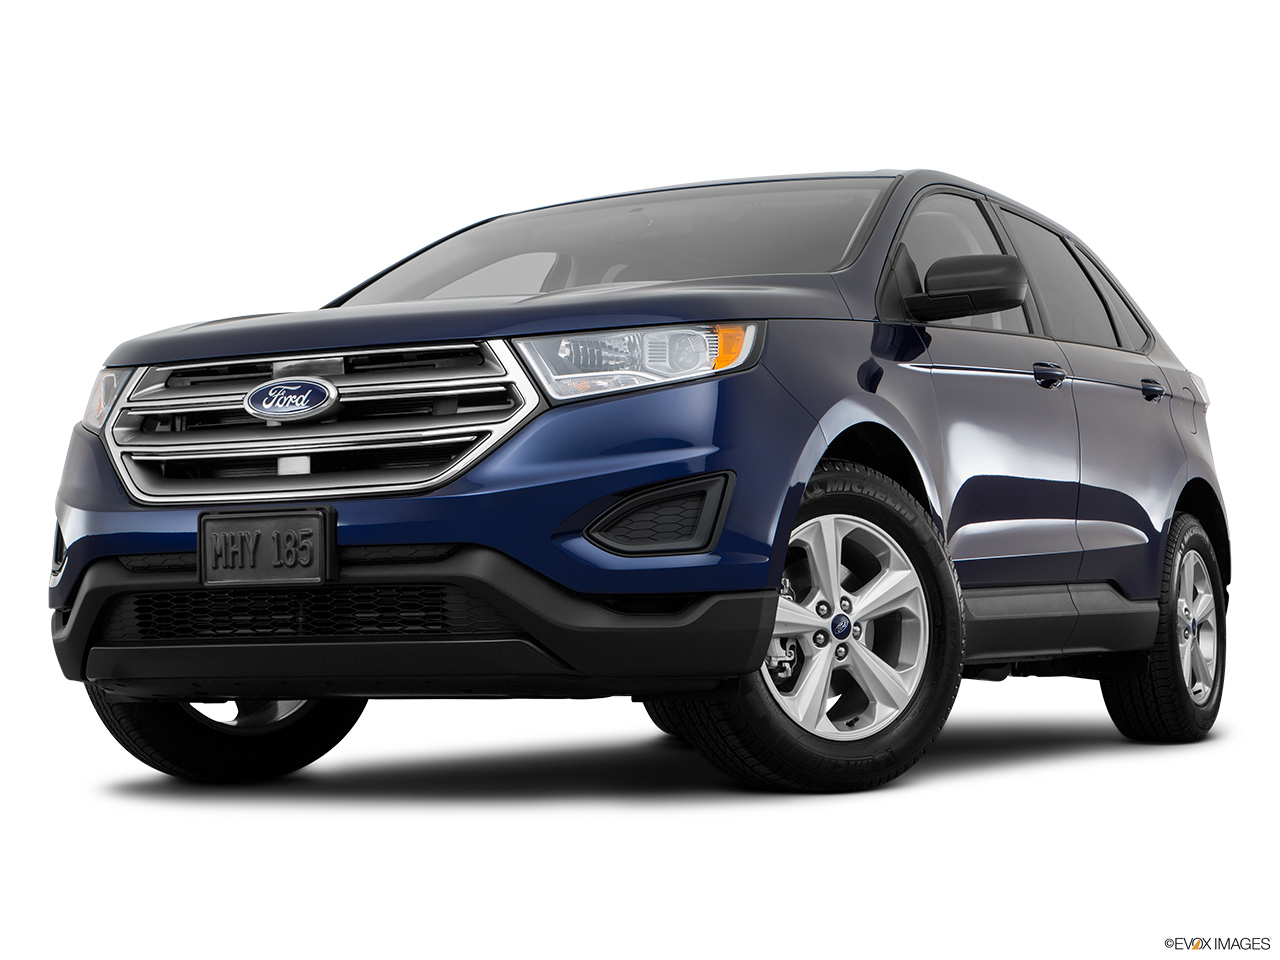 Ford Edge L Sel Kuwait Front Angle View Low Wide Perspective